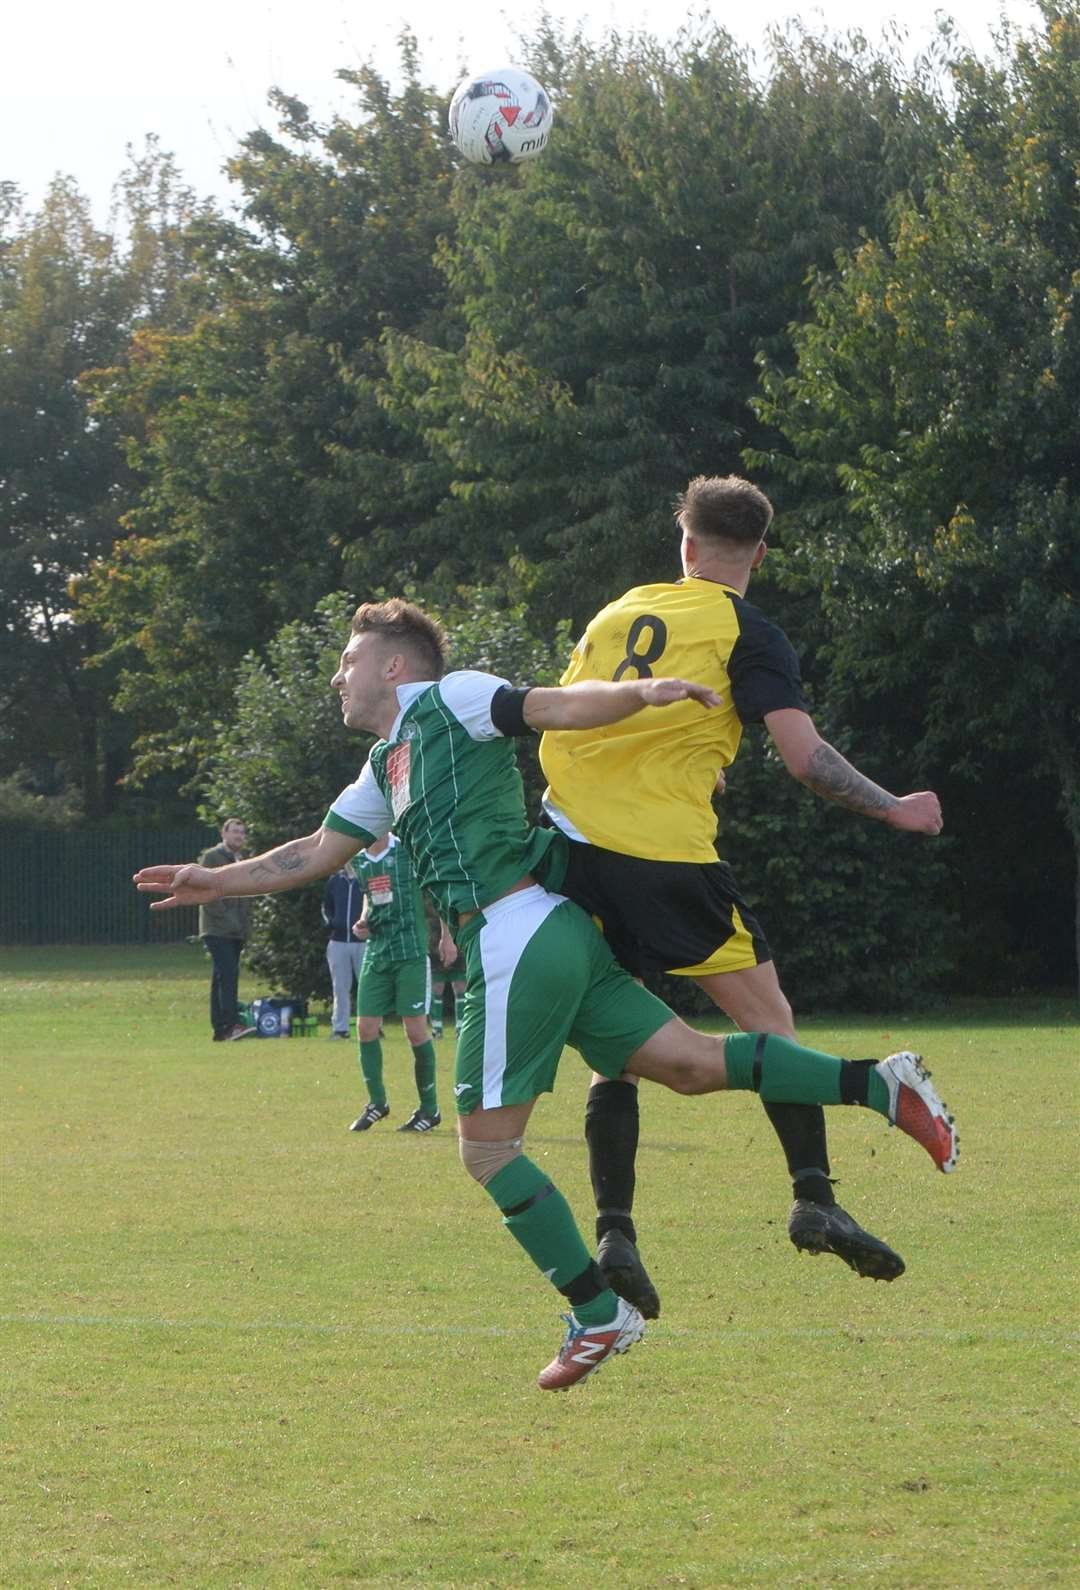 Adam Kettleborough in action for Holy Trinity (green and white). (4688161)